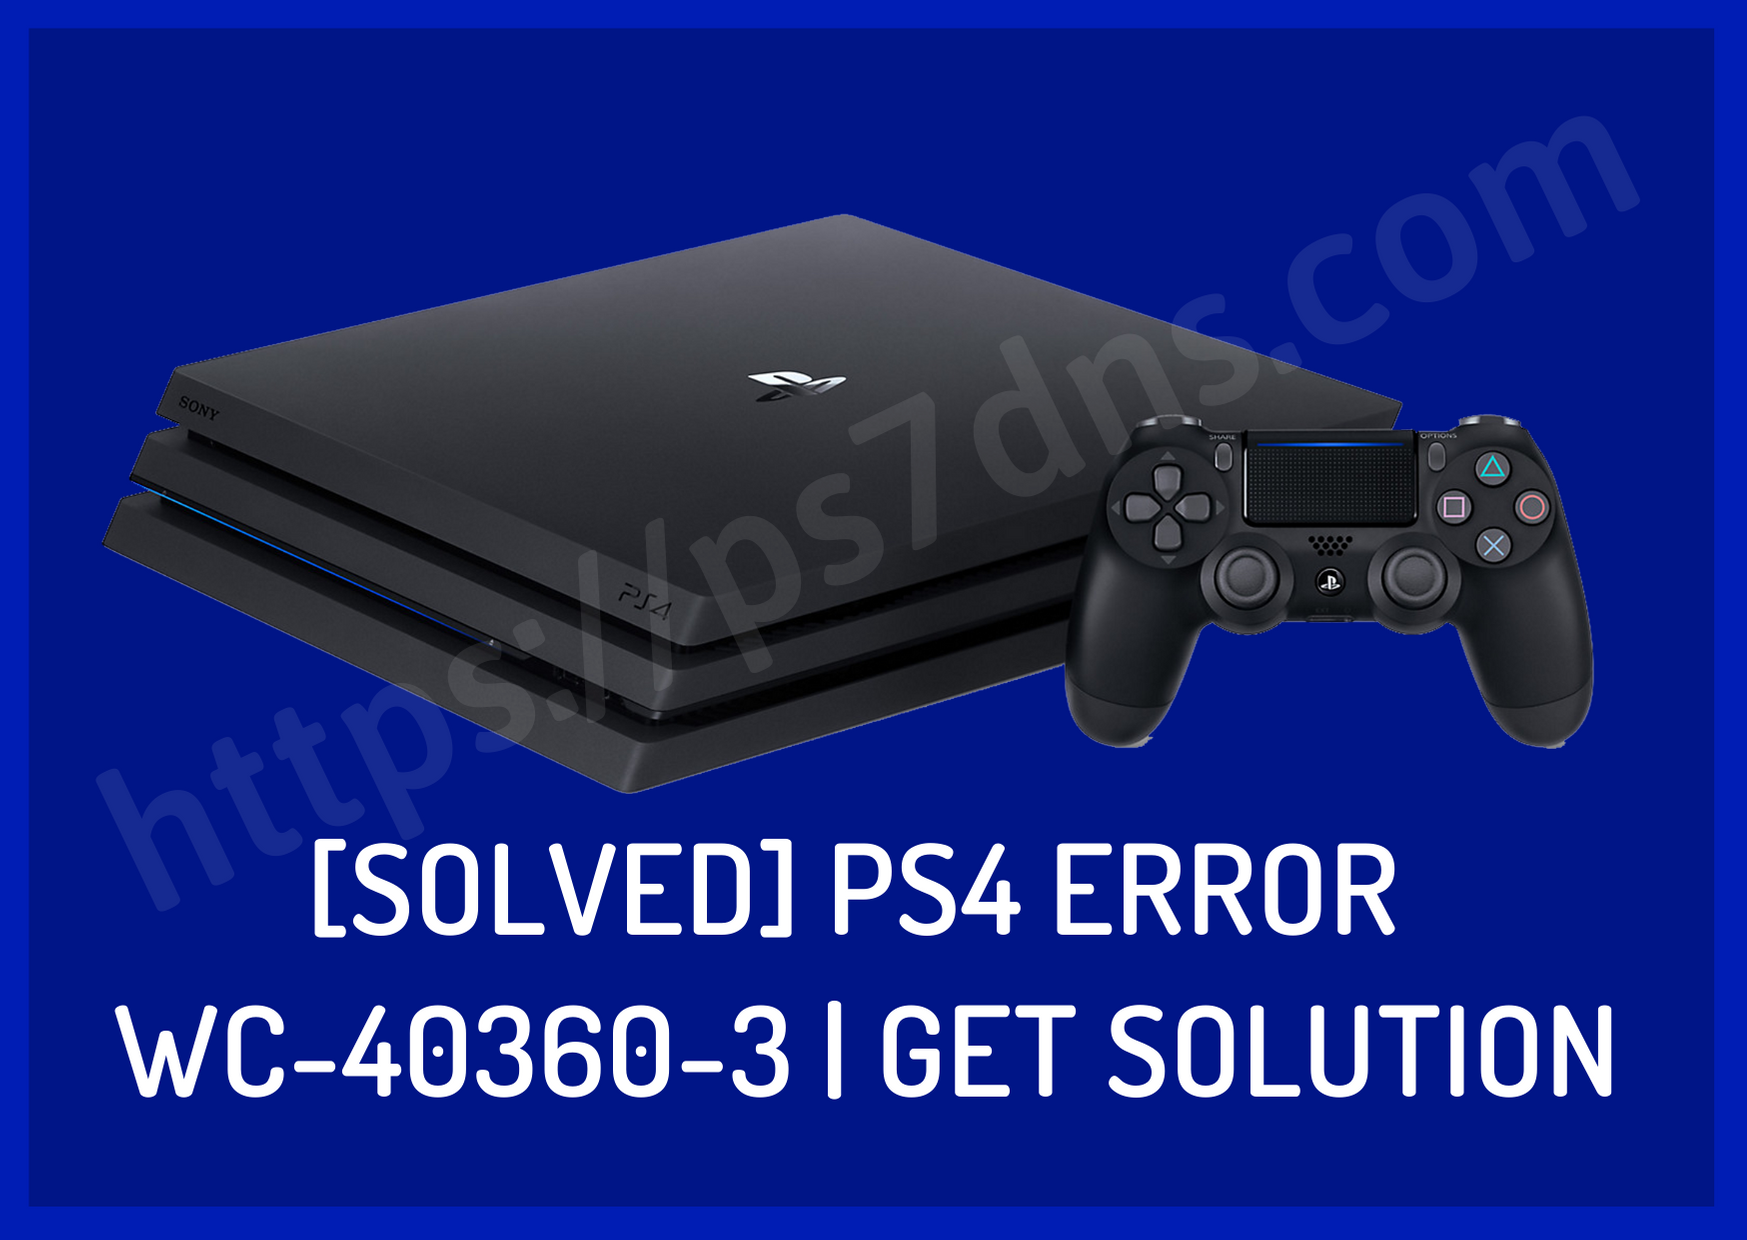 [Solved] PS4 Error WC-40360-3 Get Solution